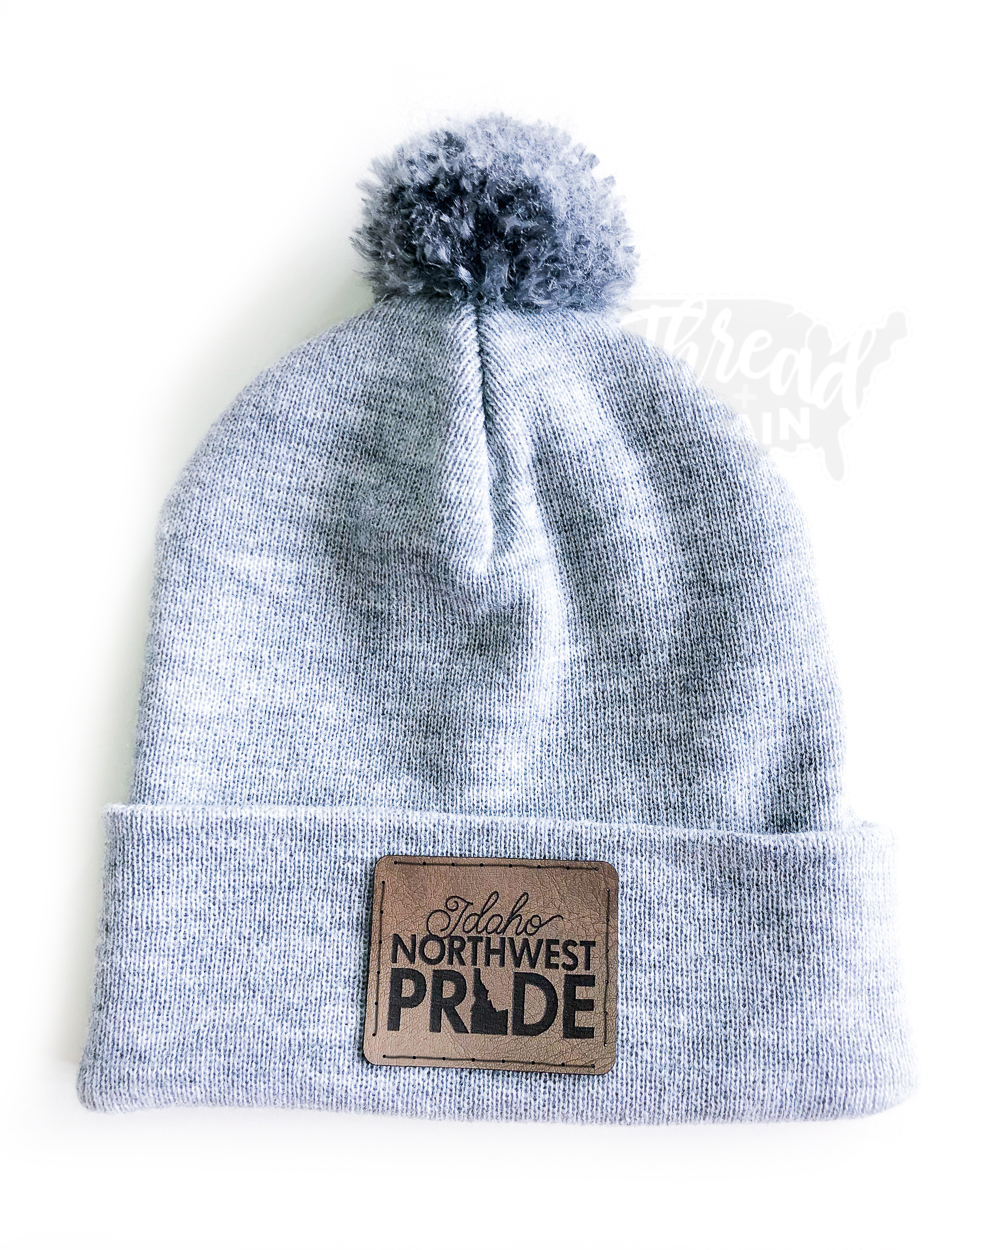 Idaho :: Northwest Pride PATCHED HAT